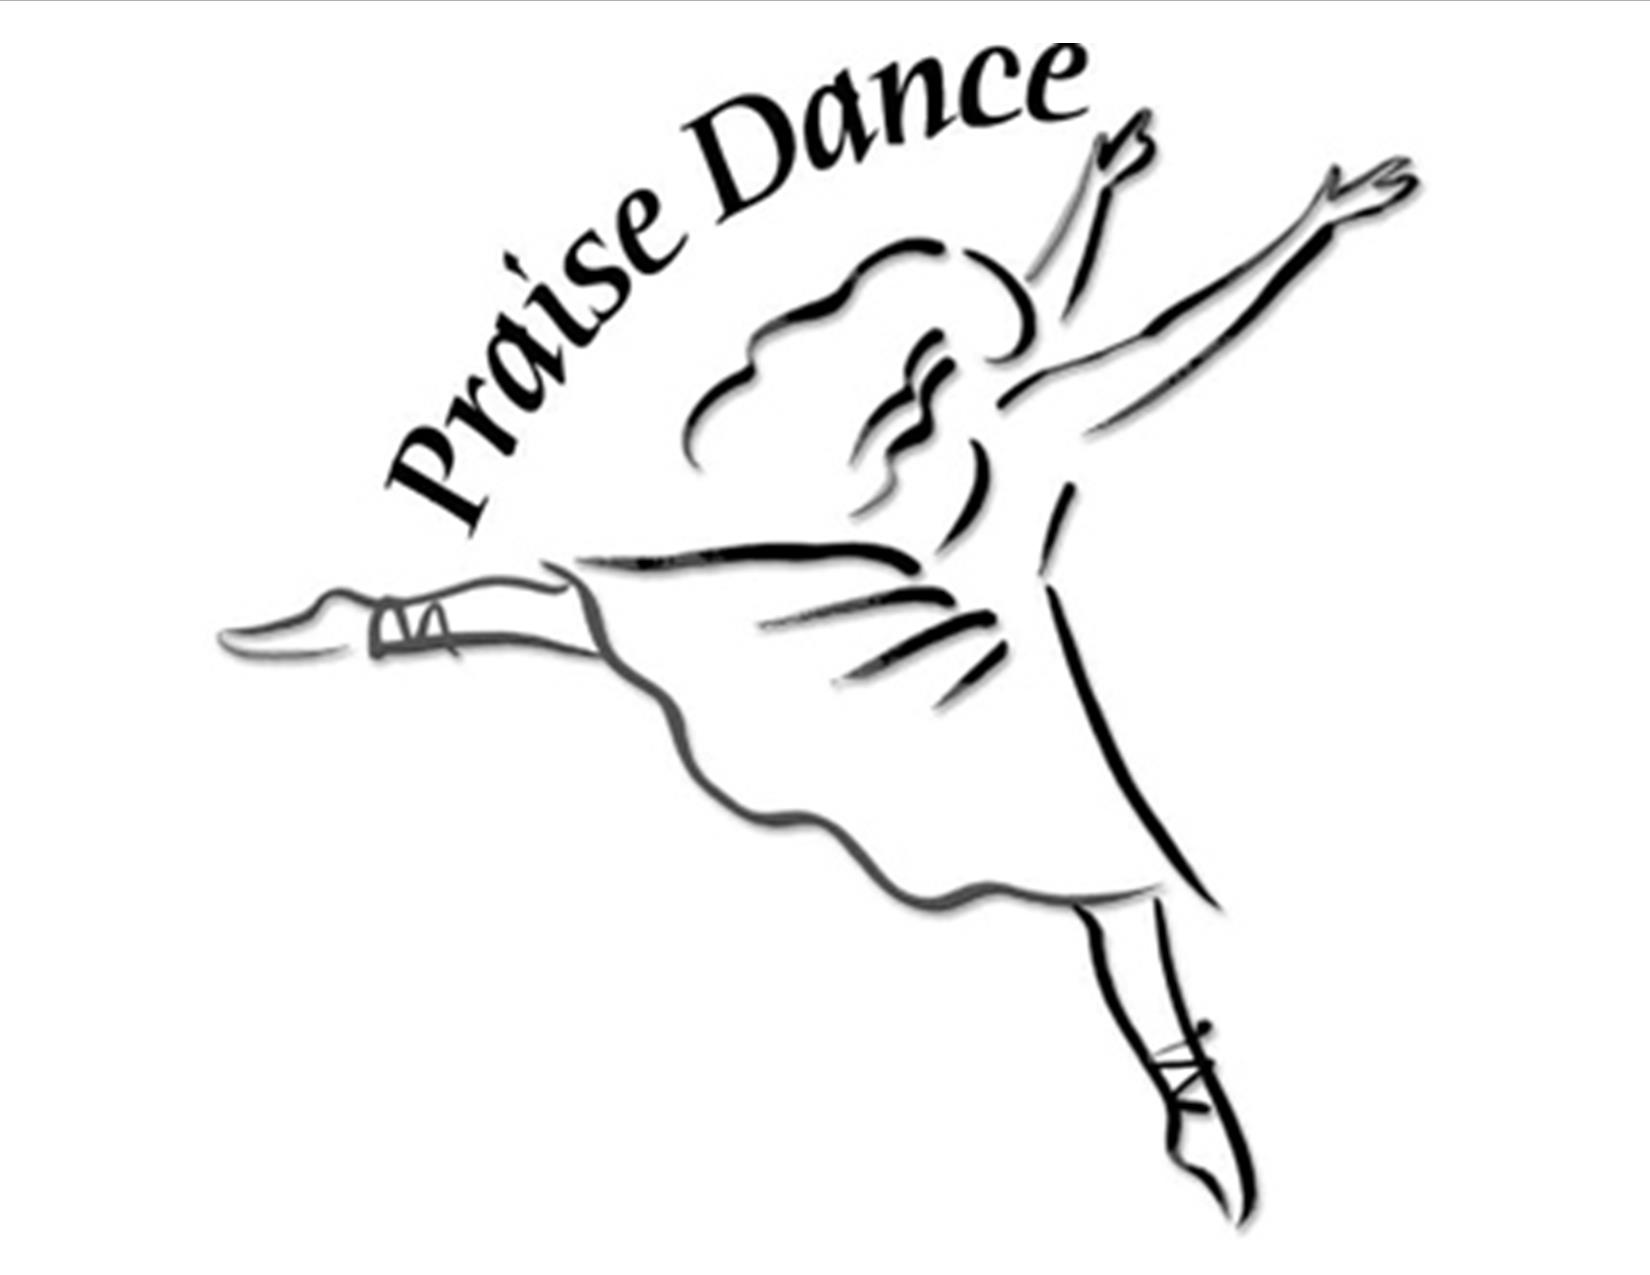 Free Dance Worship Cliparts Download Free Clip Art Free